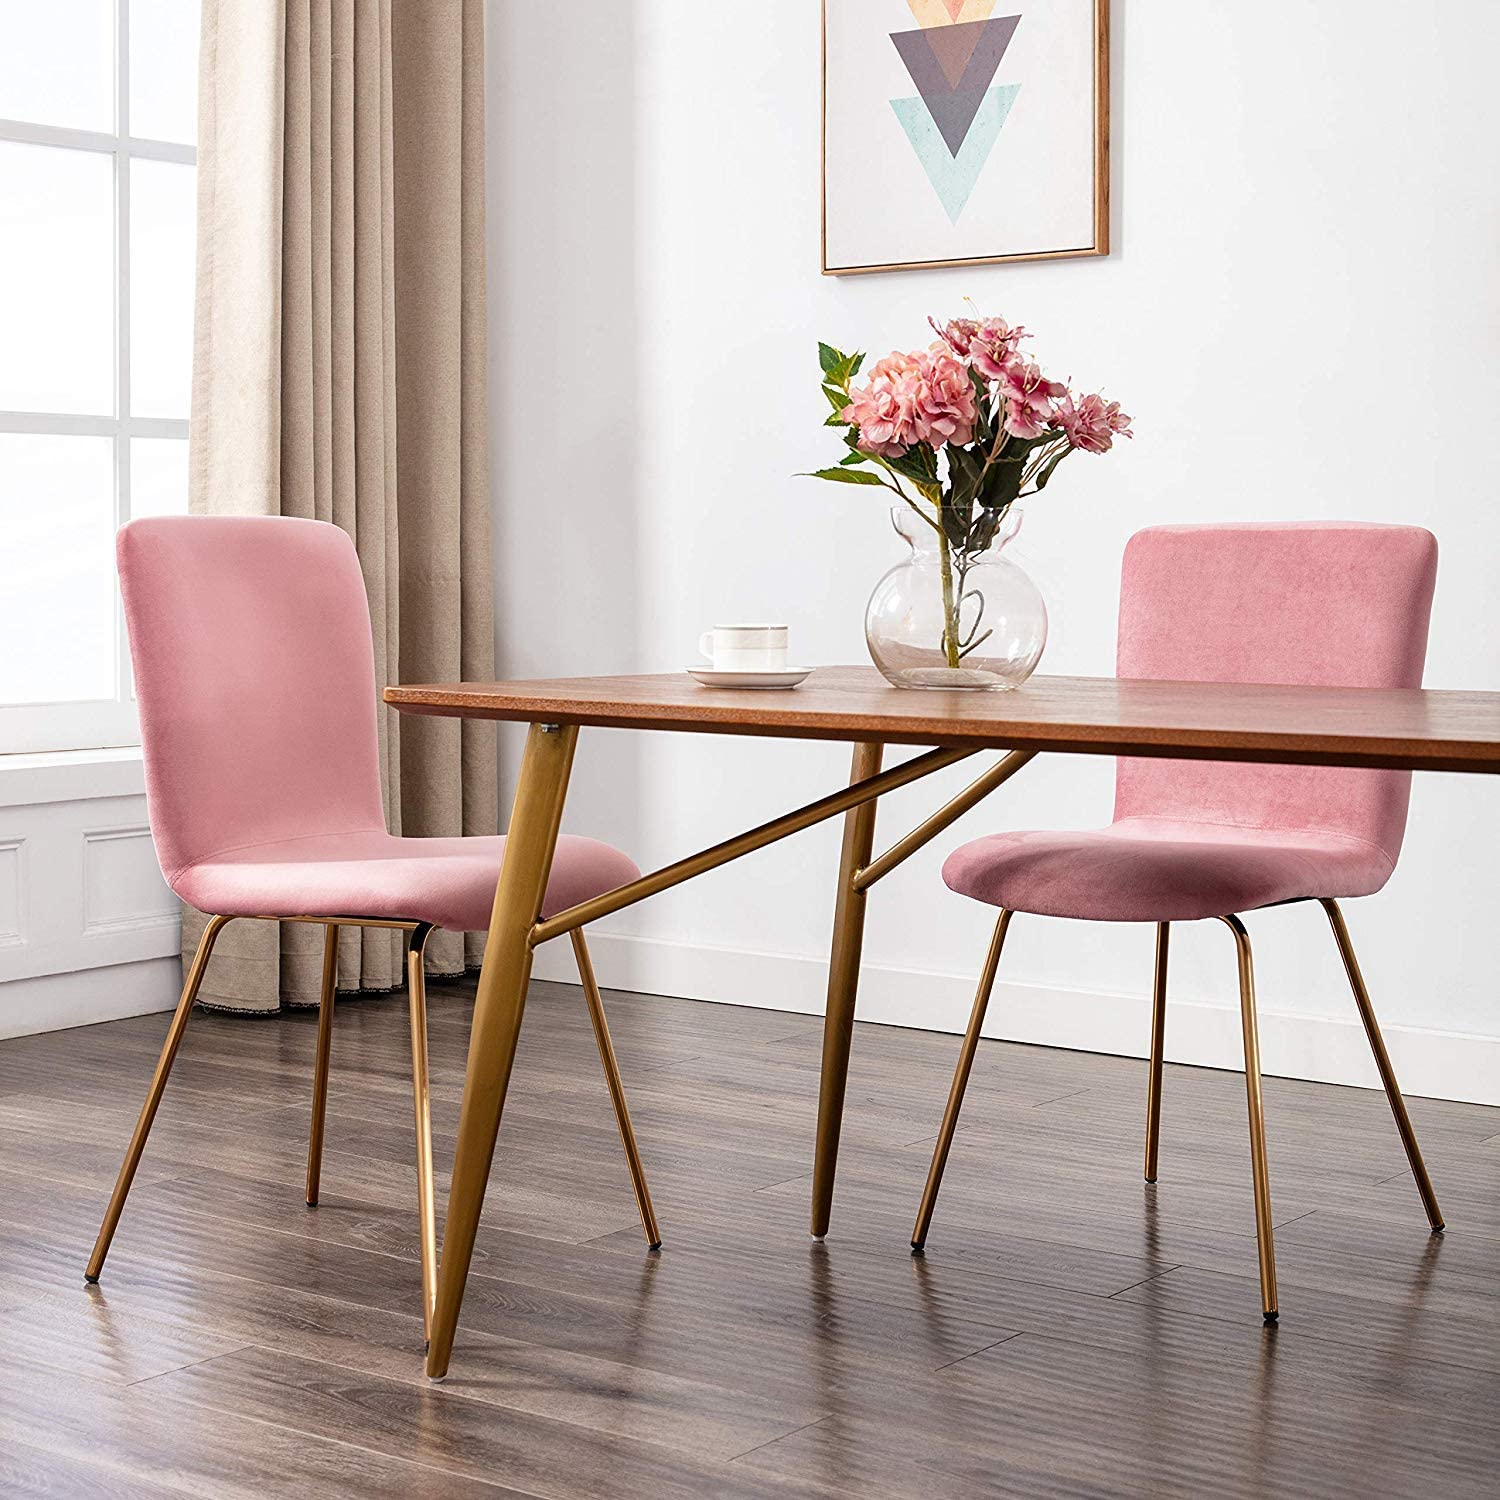 Art-Leon Mid-Century Modern Velvet Fabric Dining Chairs Set of 2 with Golden Legs and Floor Protector (Sakura Pink)